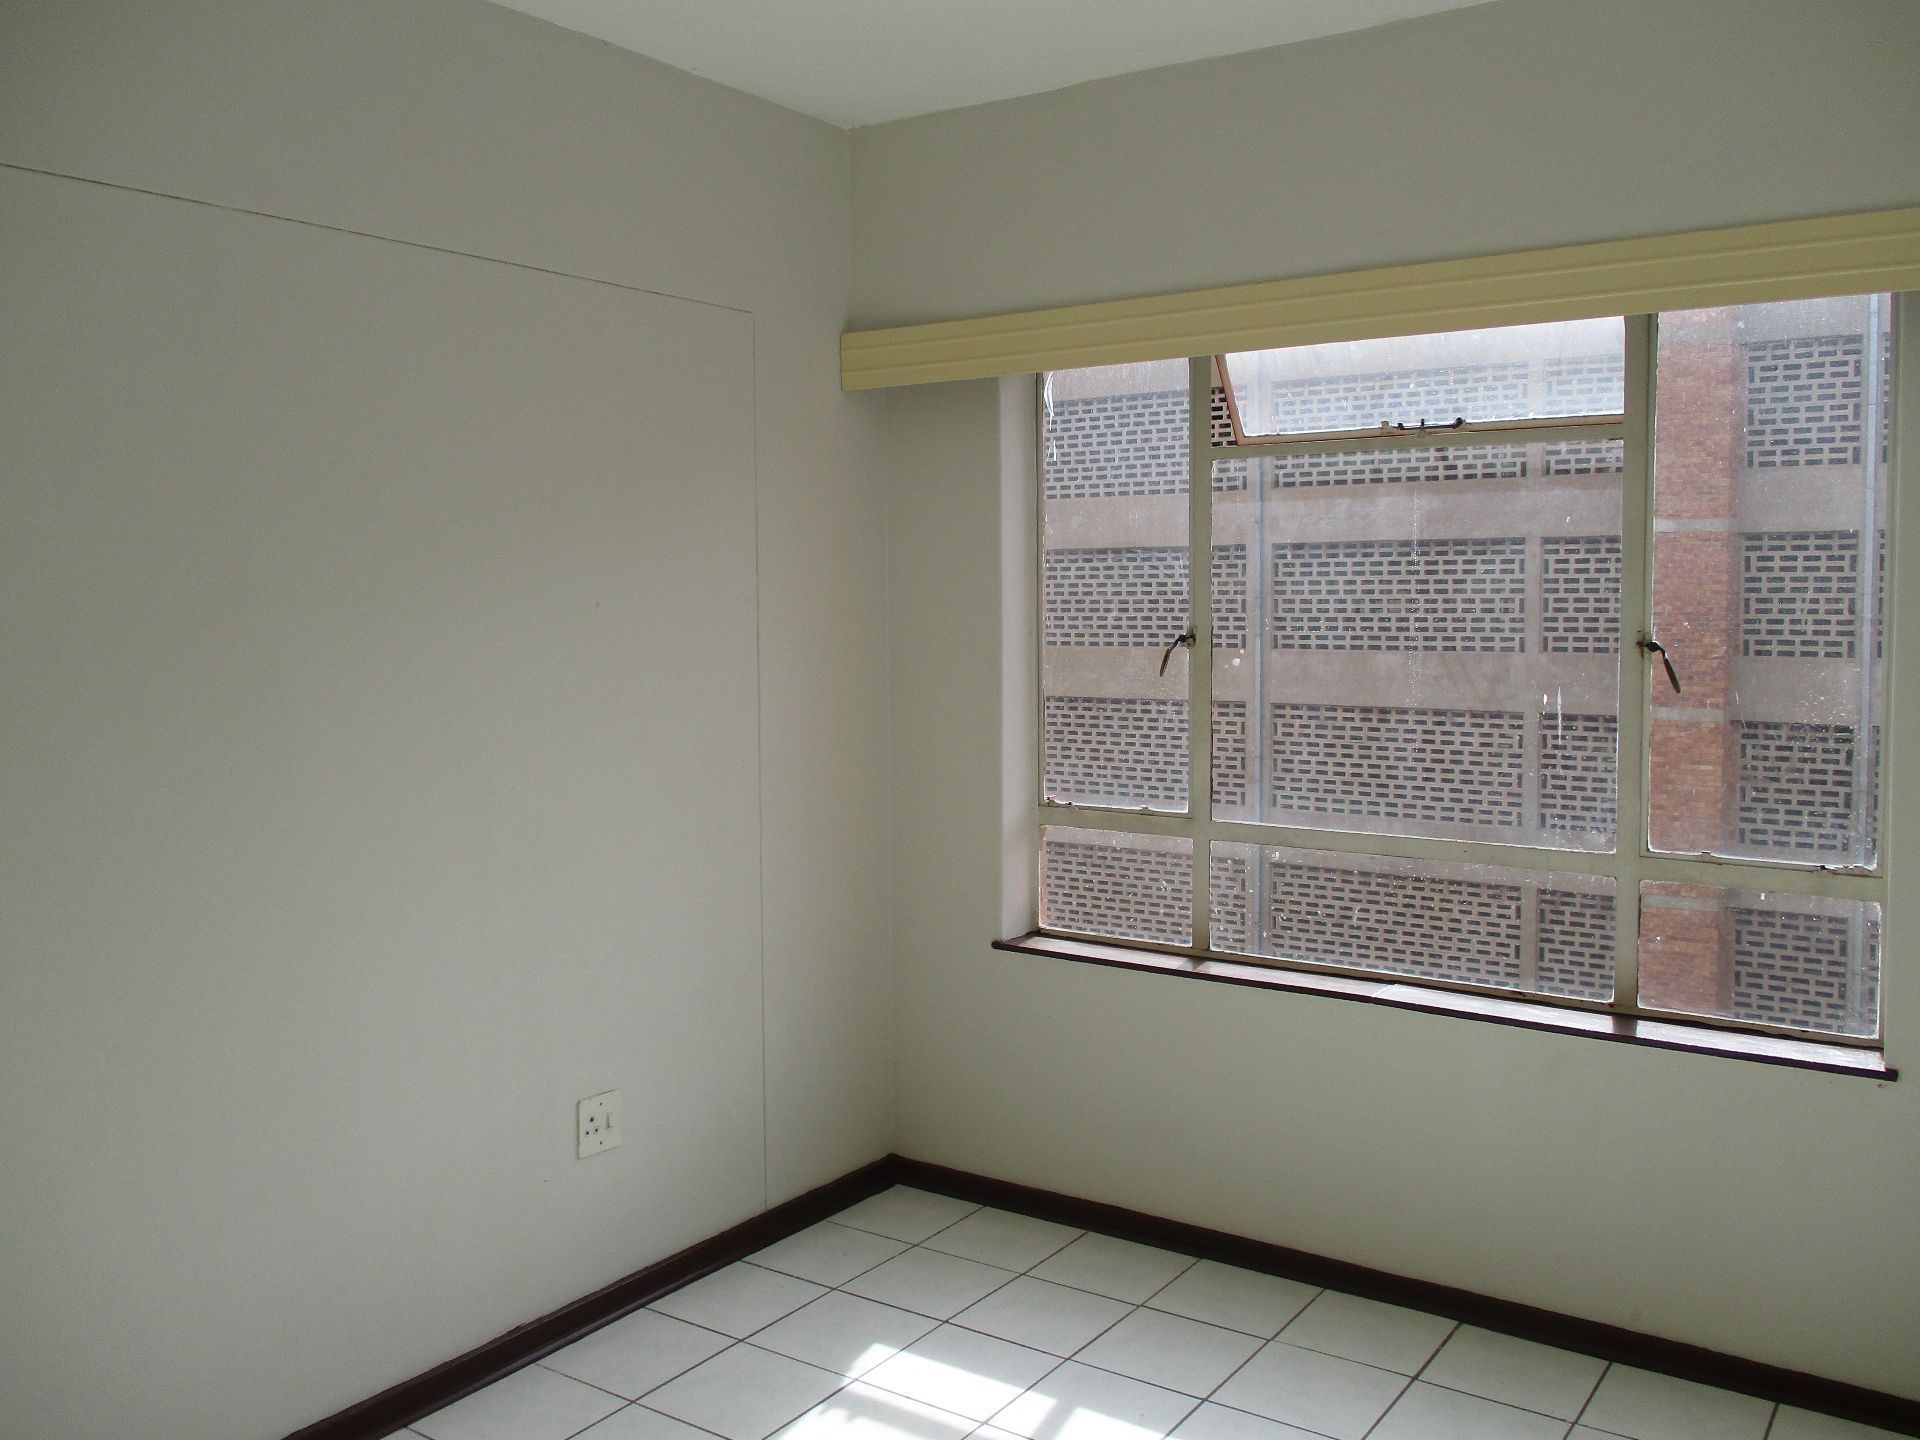 Apartment in Central - 1160239_large.jpg